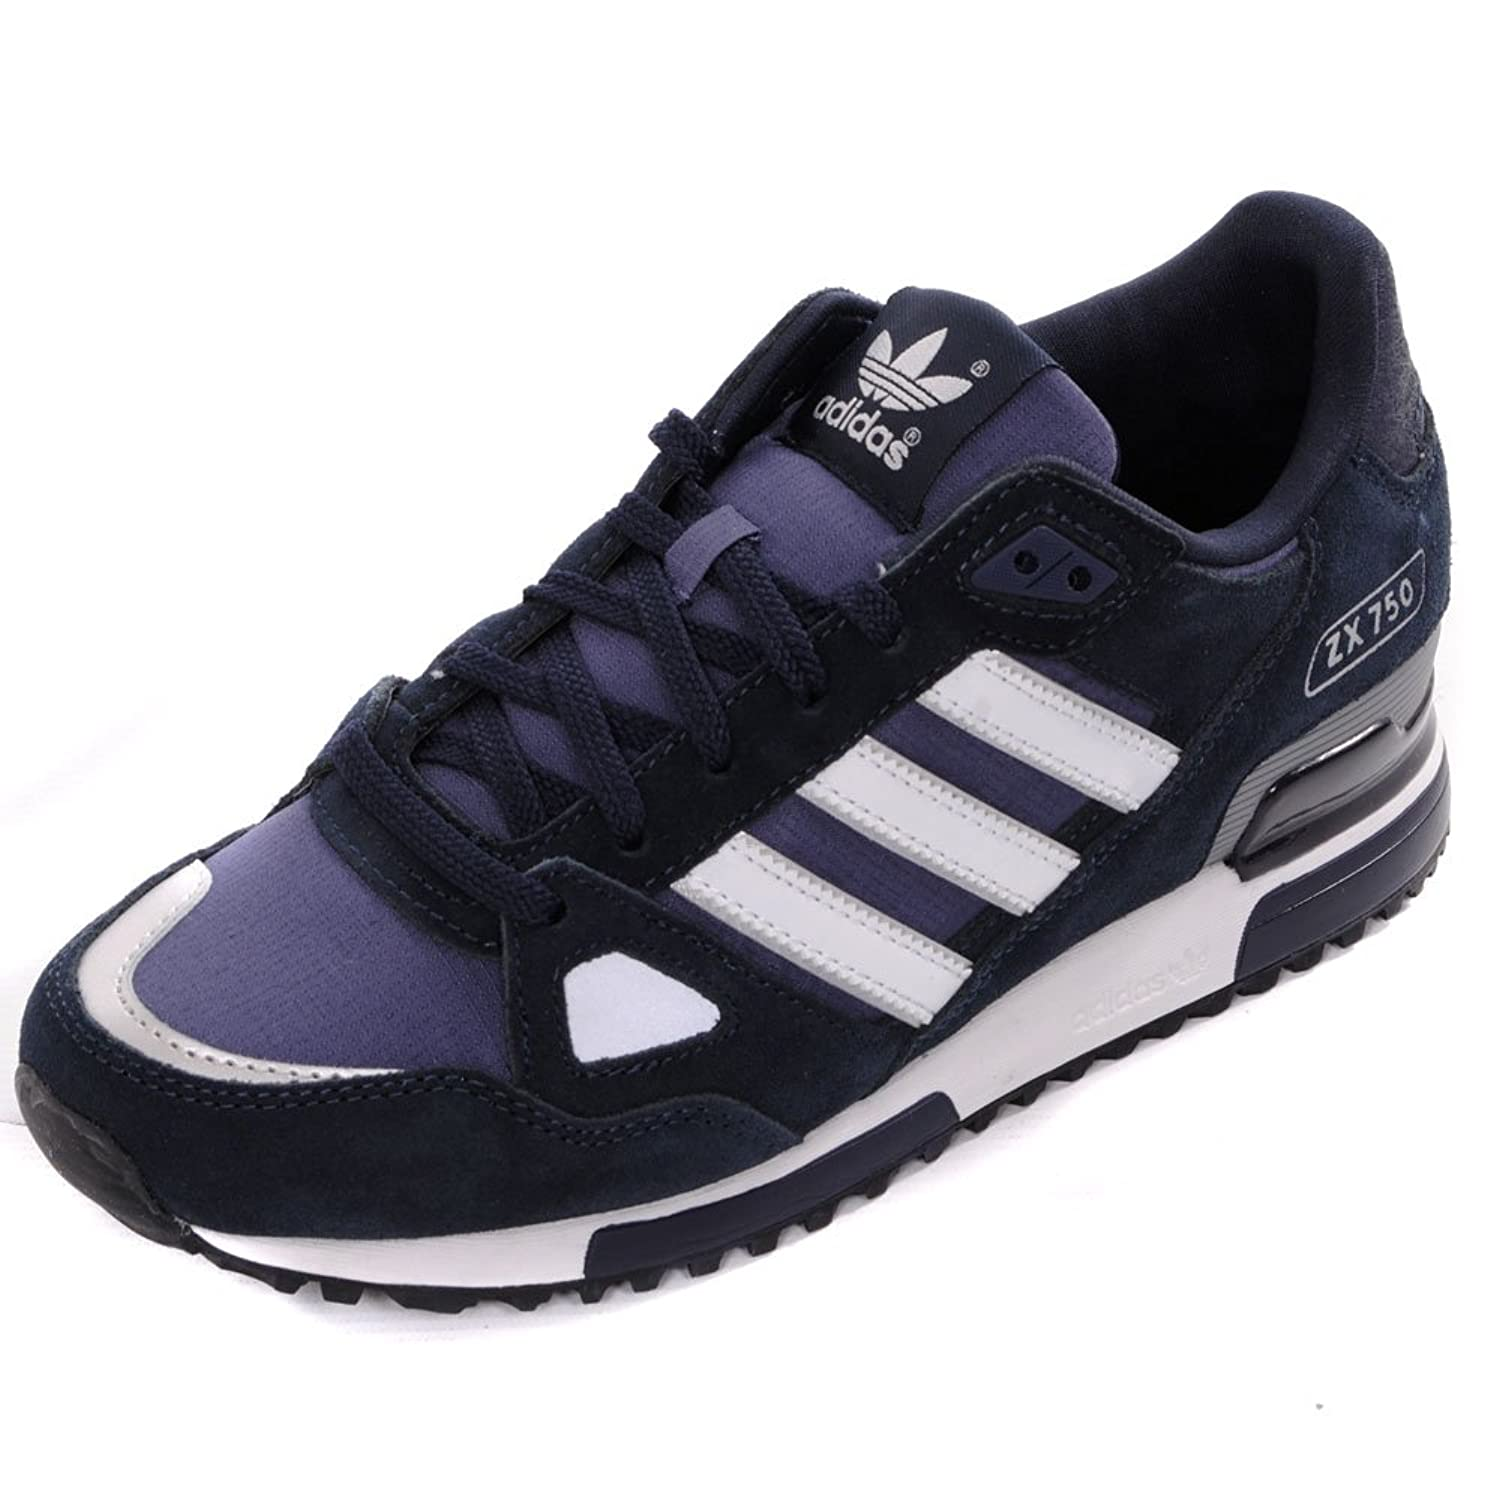 premium selection f92d0 650f1 adidas Originals ZX 750 Trainers - Navy White